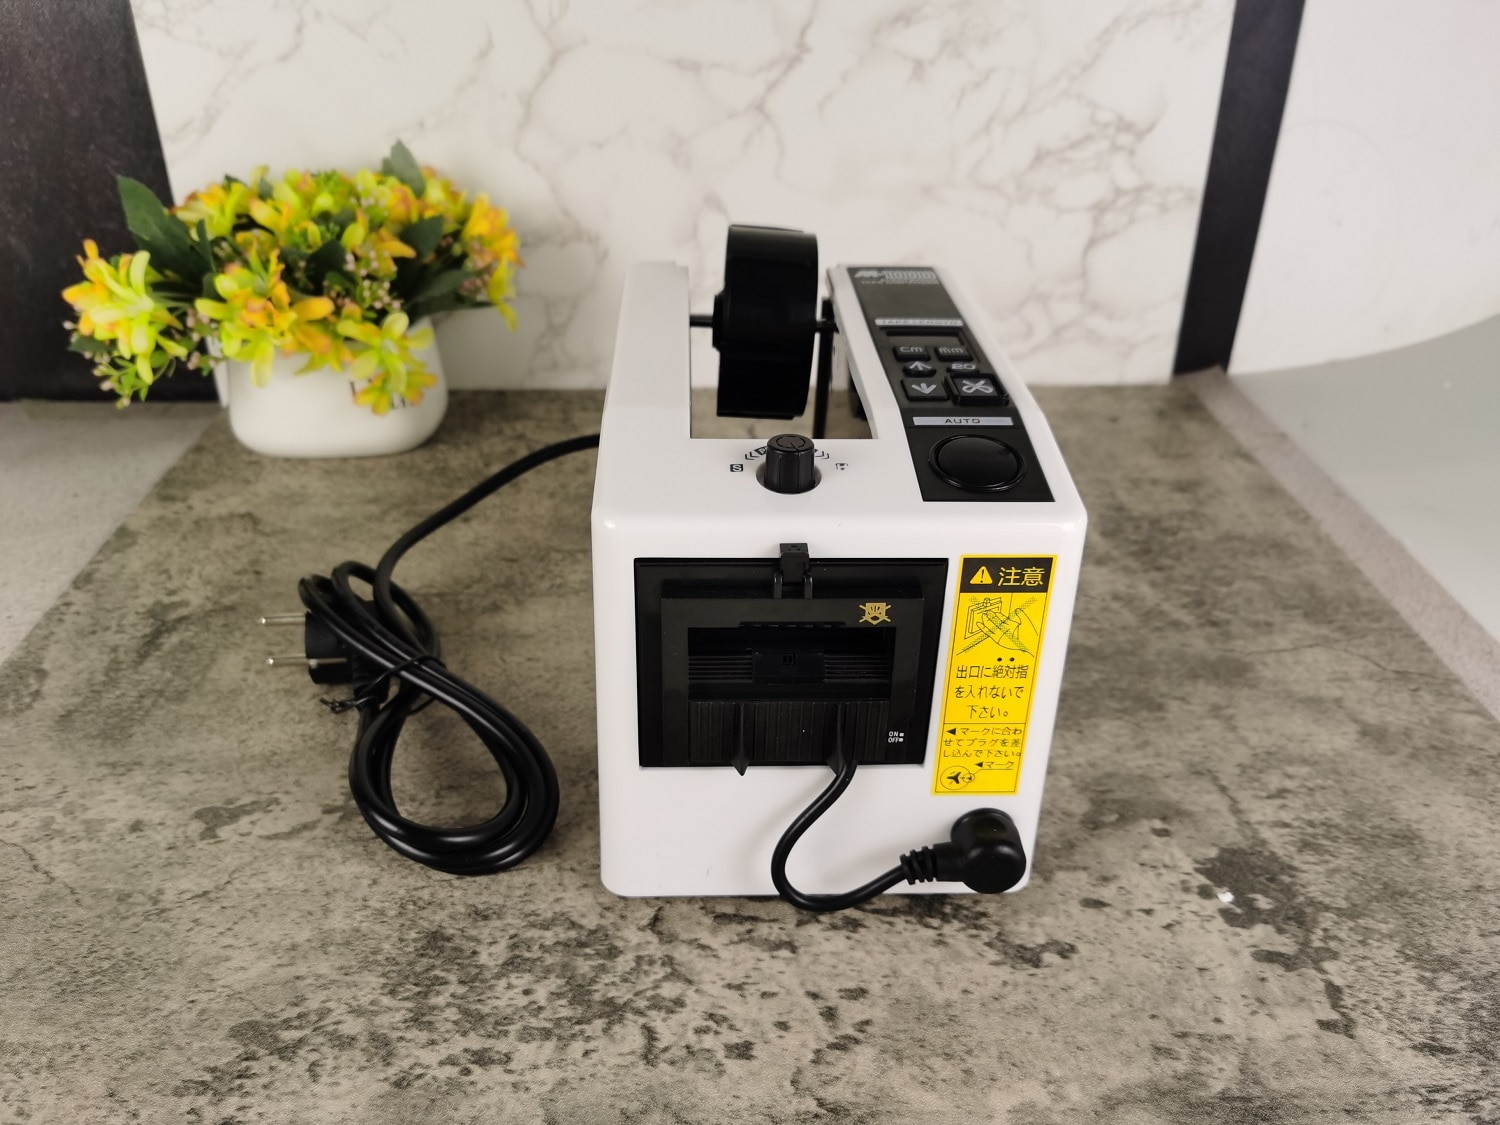 M-1000 EU In Stock Automatic Packaging Tape Dispenser 110V or 220V Office Automatic Tape Cutting Machine Equipment Tools enlarge